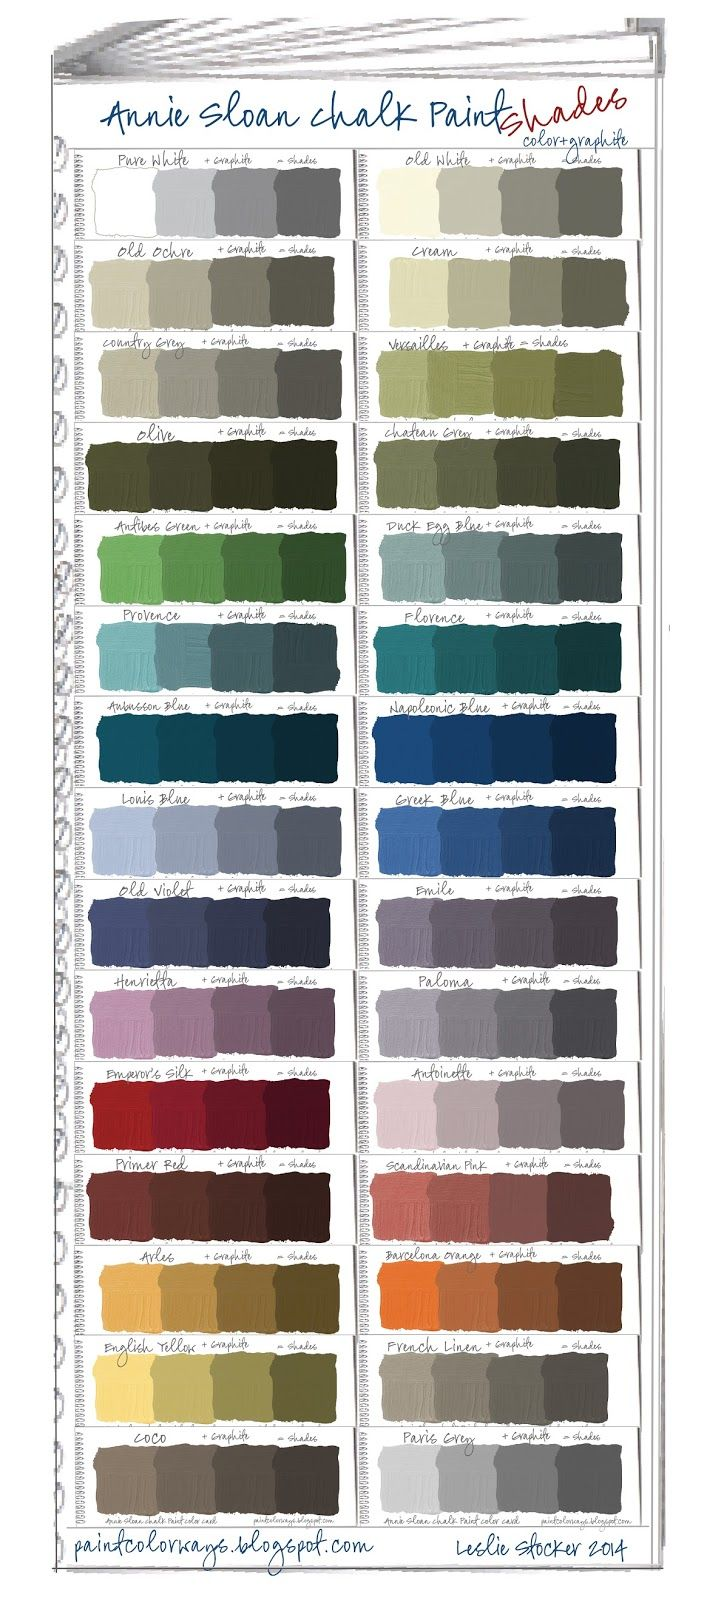 Annie Sloan Chalk Paint Swatch Book Part 2 - Shades